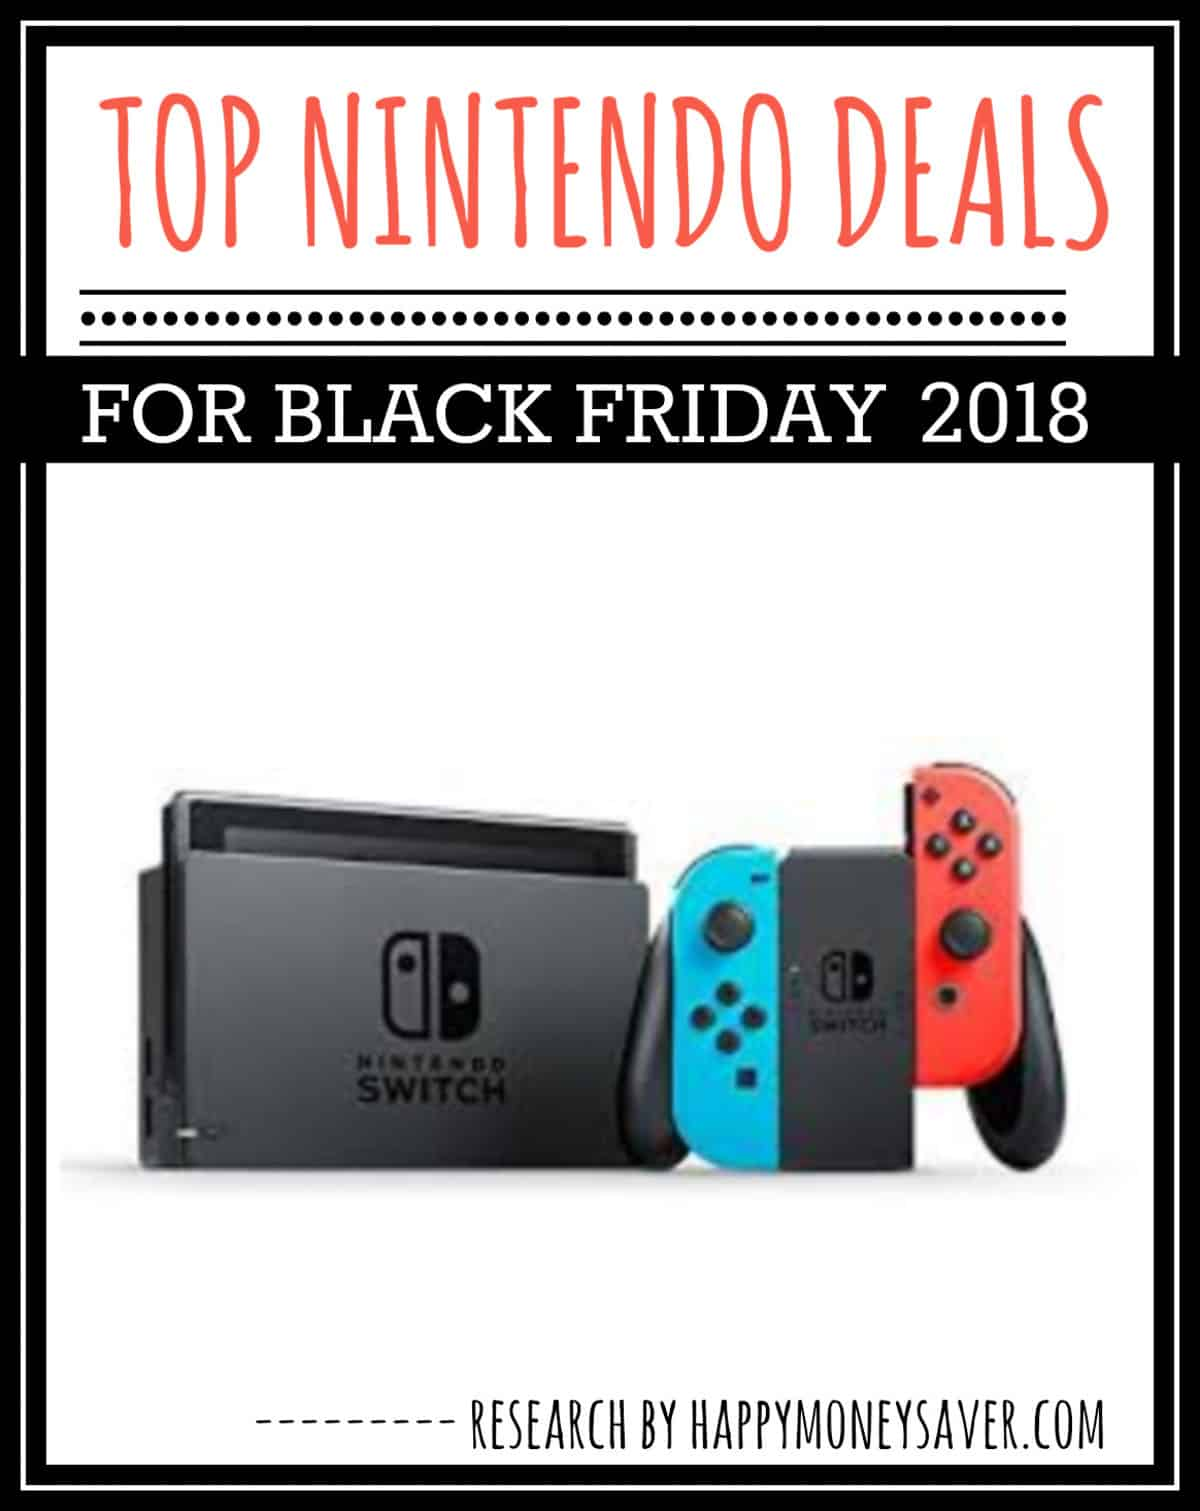 HUGE roundup of all the Nintendo Switch Black Friday deals for 2018! Nintendo Black Friday bundle deals, controllers, games + more. Research is all done for you!